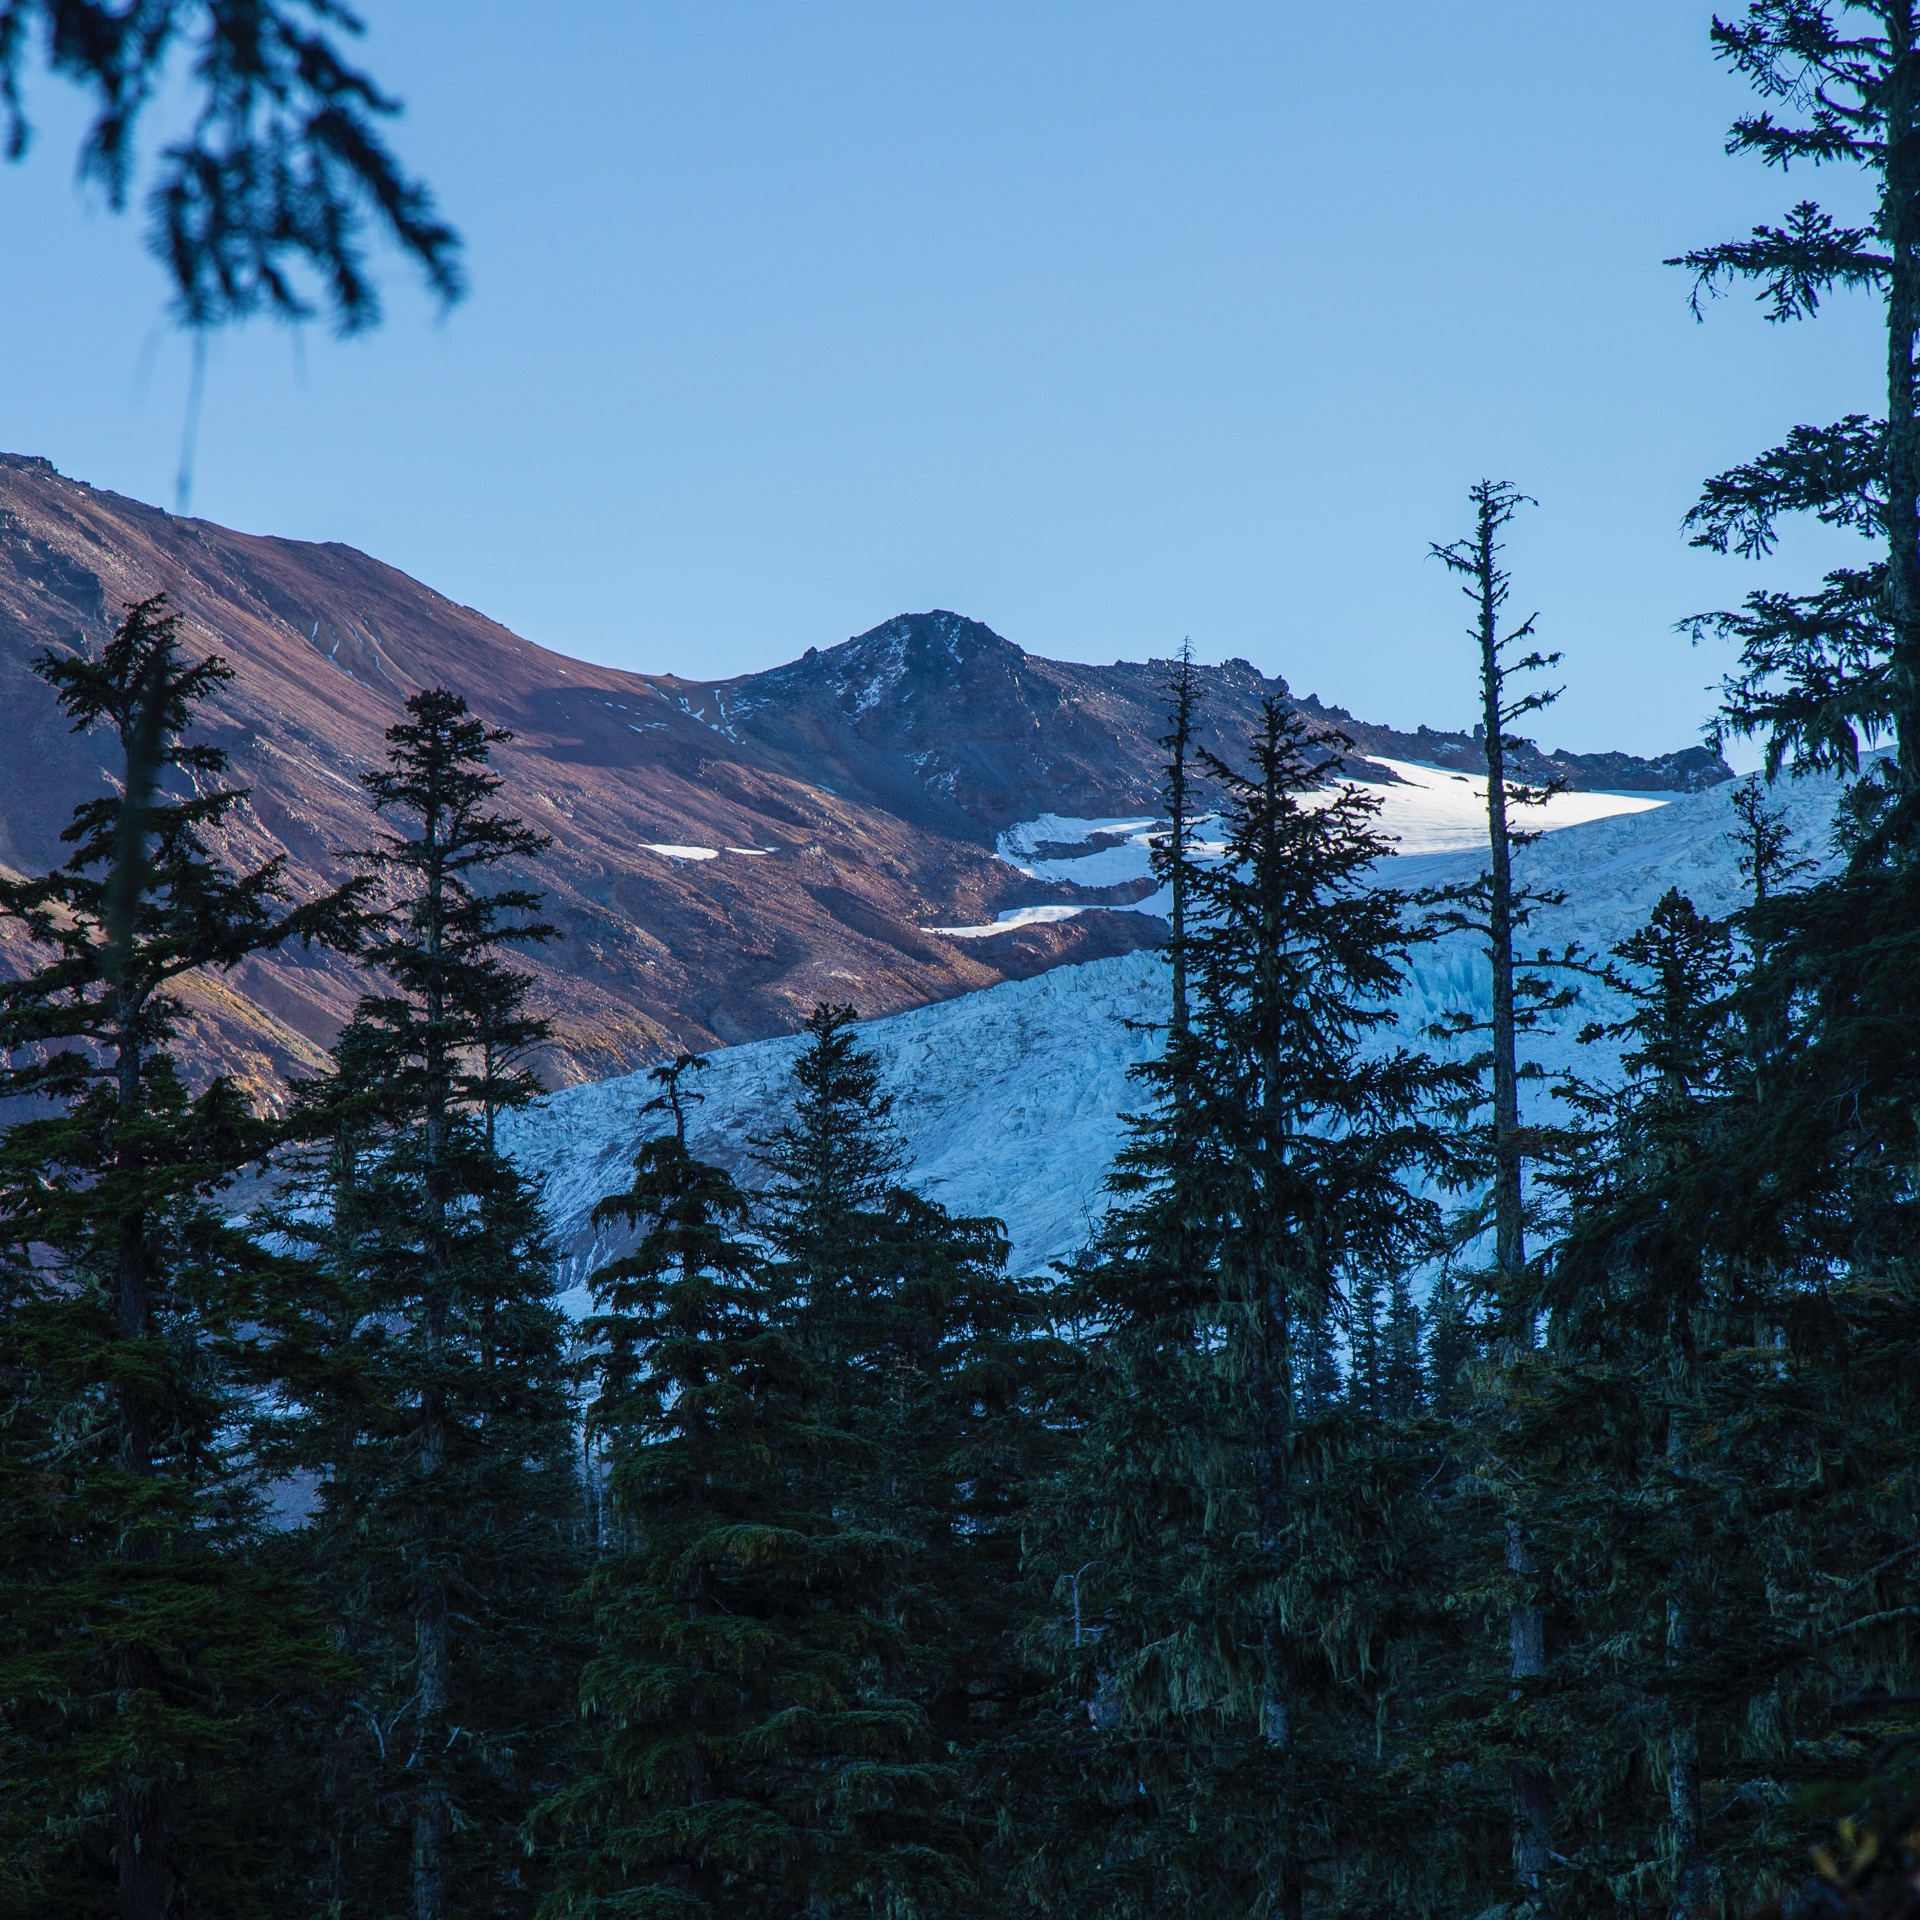 It didn't take all that long for us to catch a glimpse of the glacier through the trees.